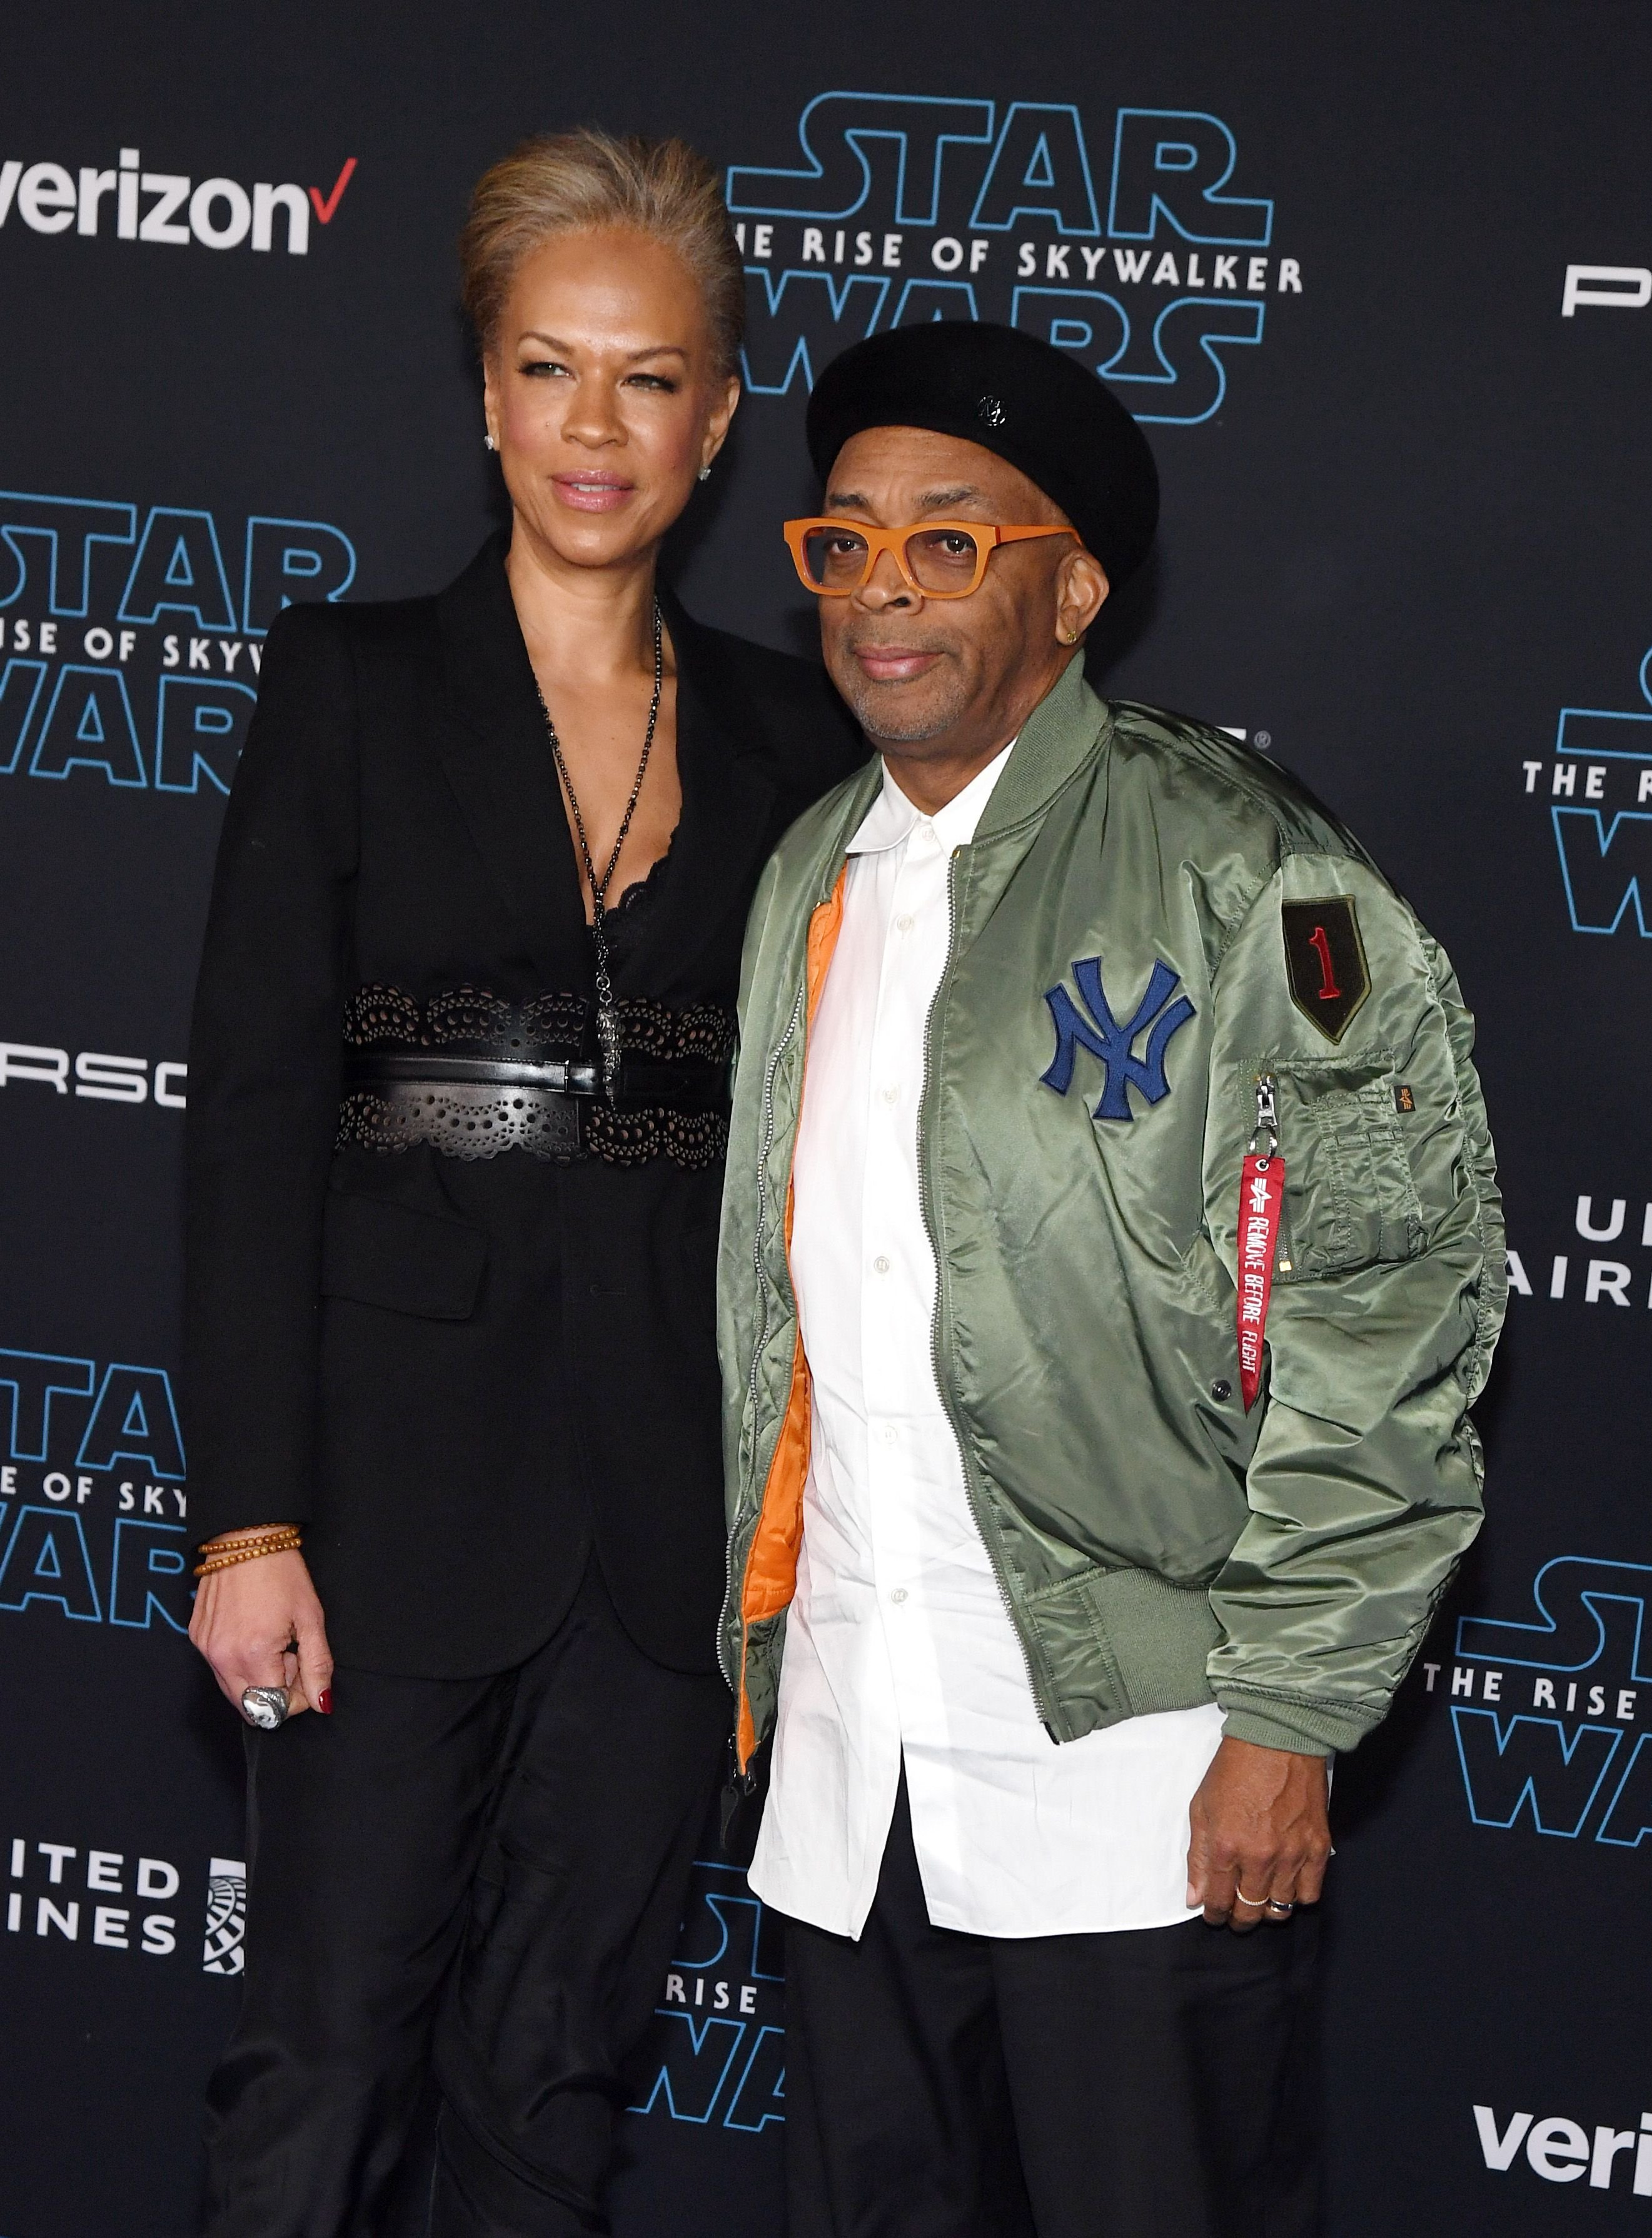 """Tonya Lewis Lee and Spike Lee,at the premiere of """"Star Wars: The Rise of Skywalker"""" in December 2019 in Hollywood   Source: Getty Images"""